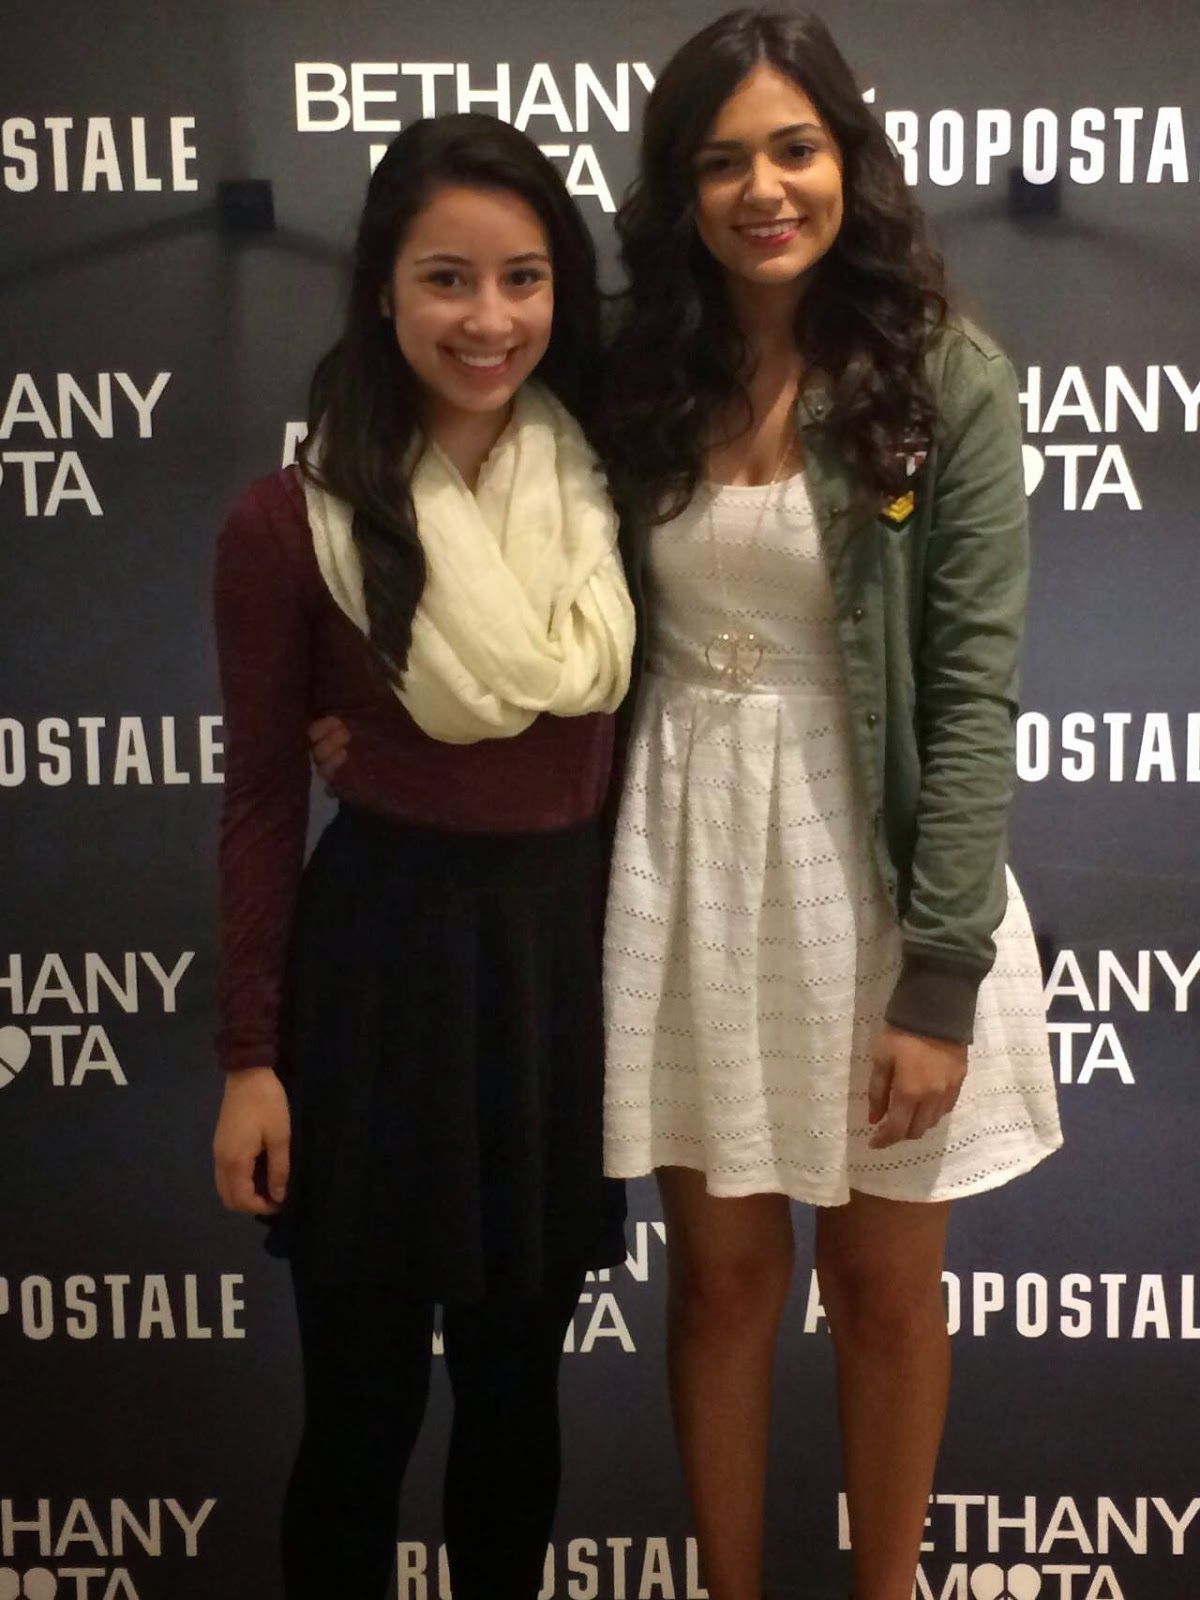 Knots and ruffles i got to meet bethany mota i could have talked to her but there were hundreds of people in line so there wasnt much time for talking it was really amazing to meet her though m4hsunfo